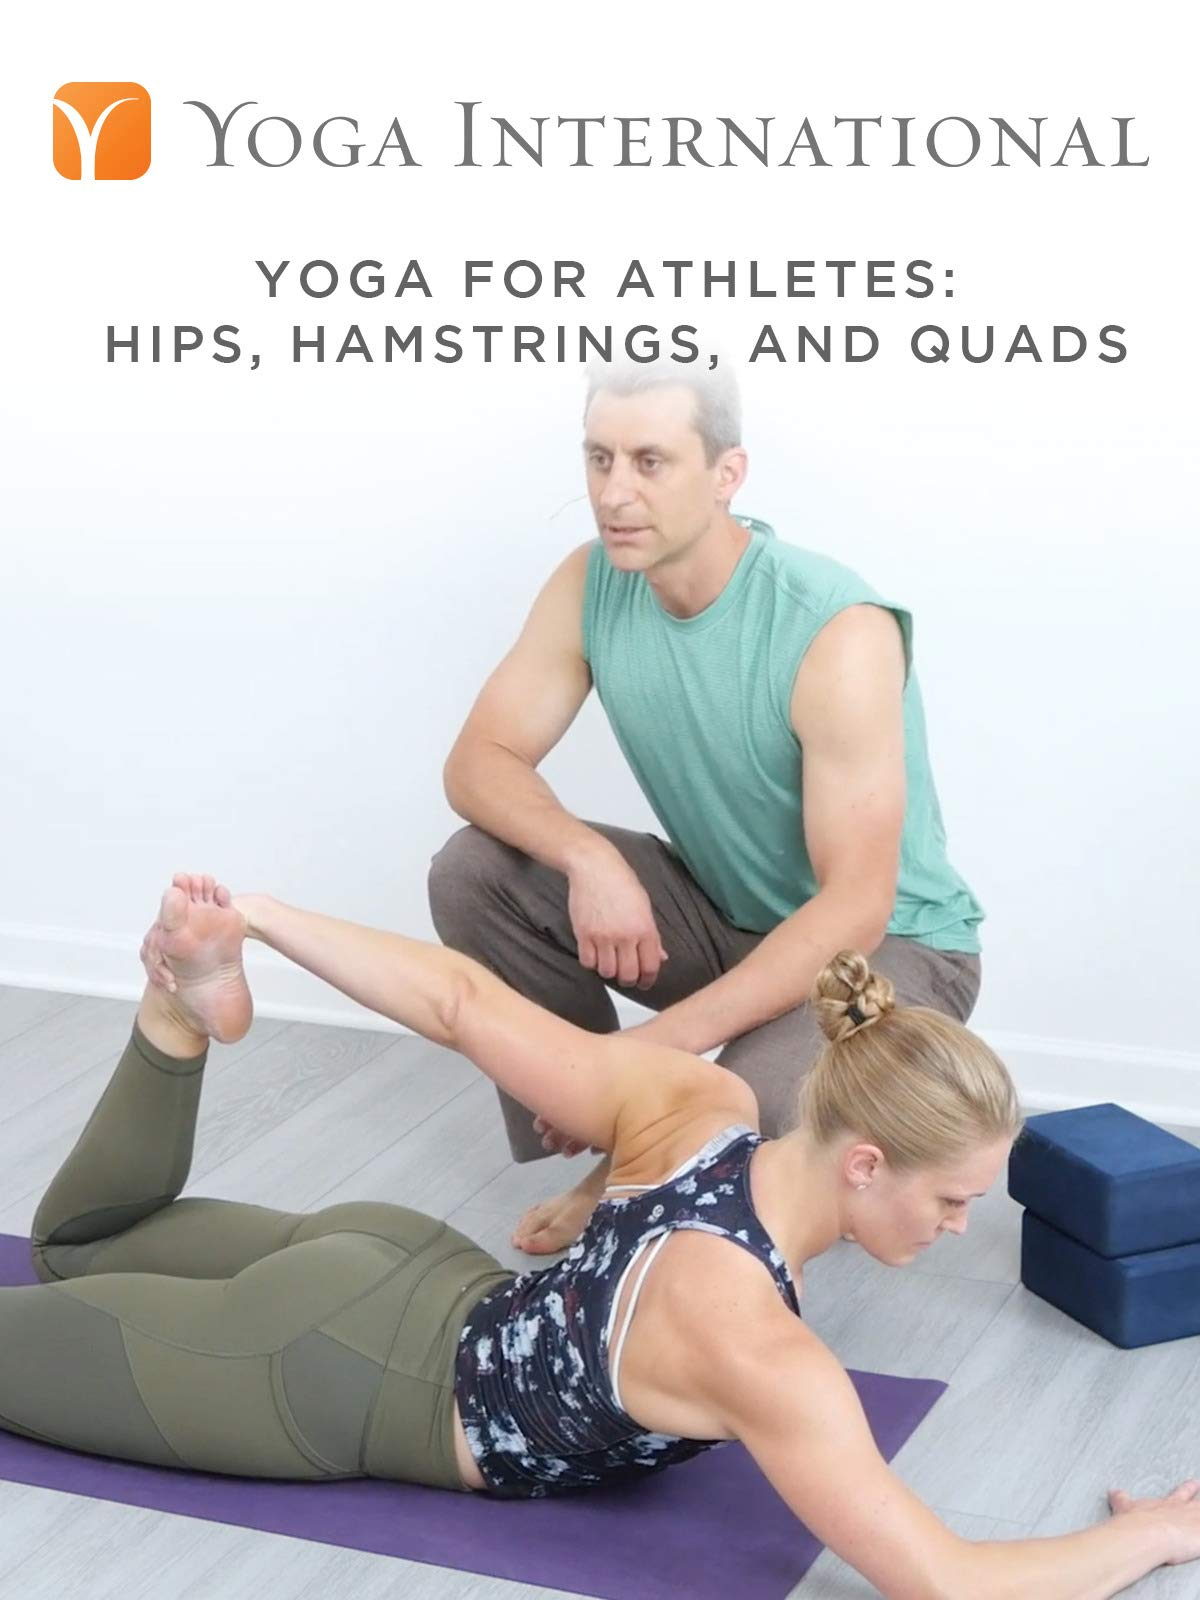 Yoga for Athletes: Hips, Hamstrings, and Quads